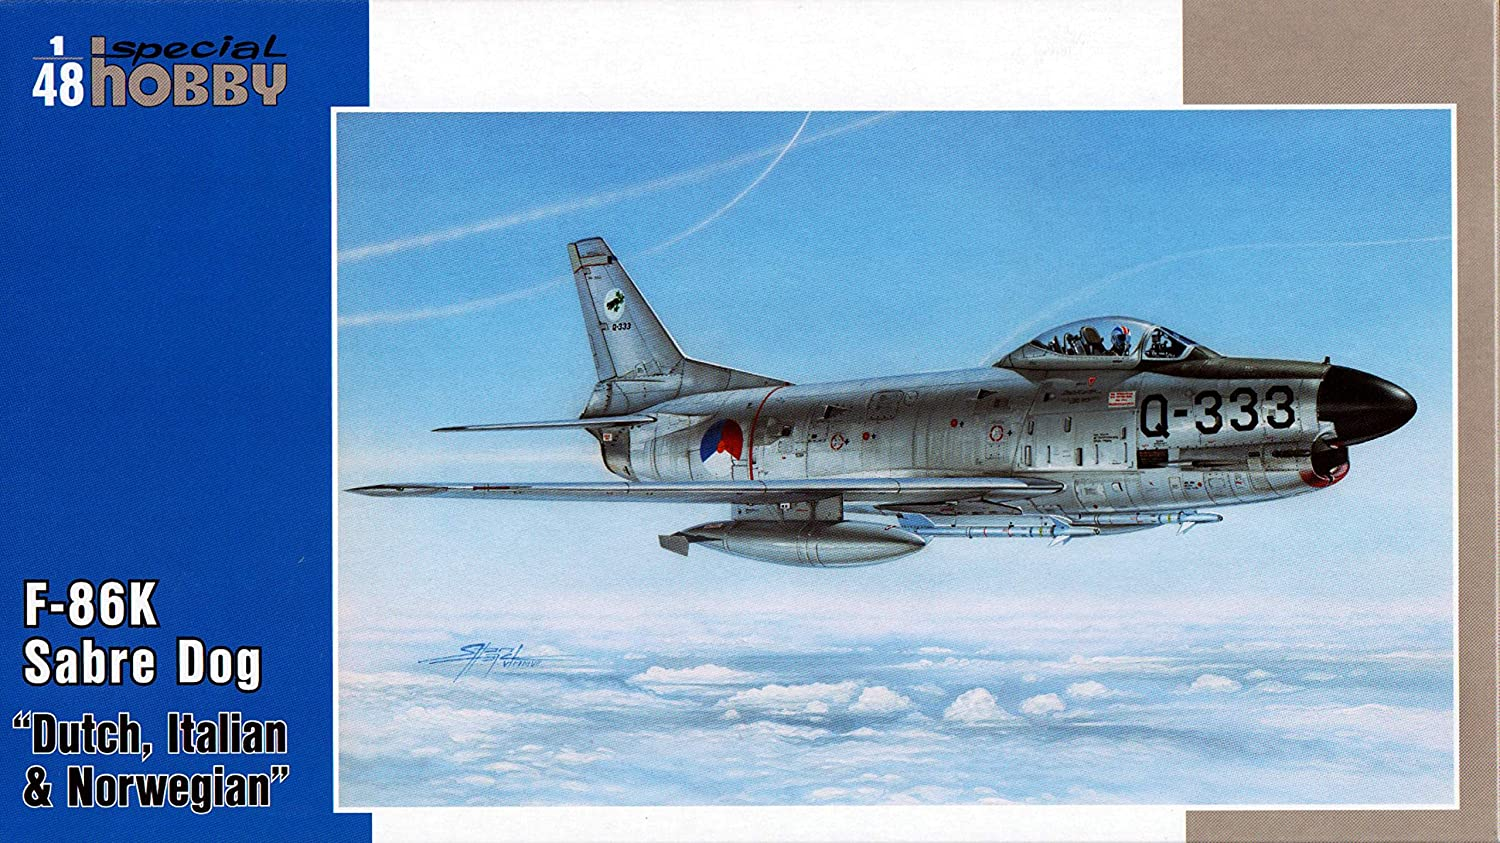 Special Hobby (SPEOK) F-86K Sabre 'NATO All Weather Fighter'